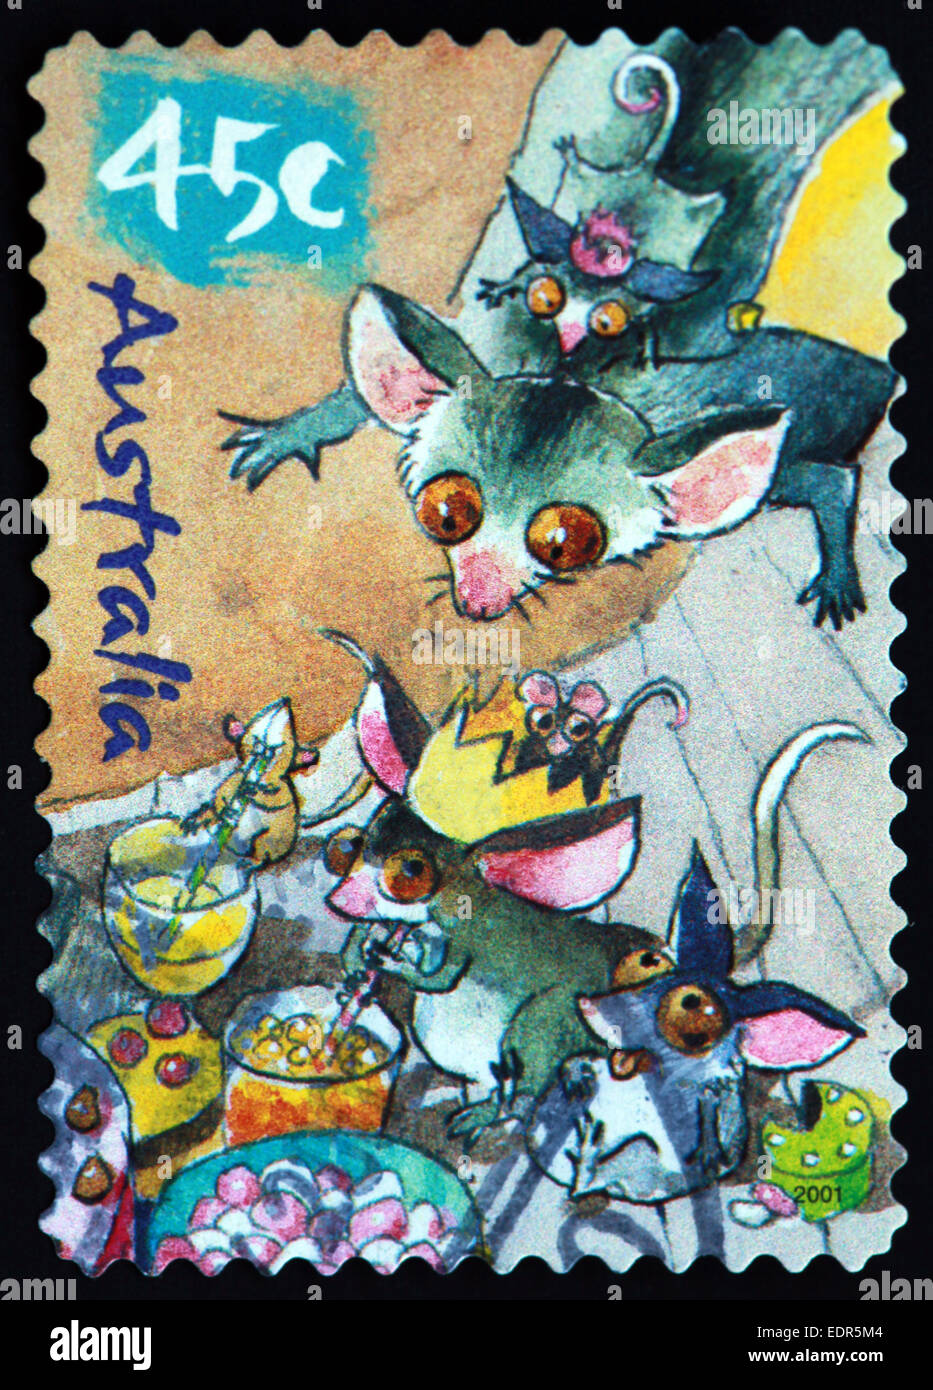 Used and postmarked Australia / Austrailian Stamp 45c cartoon mouse mice - Stock Image